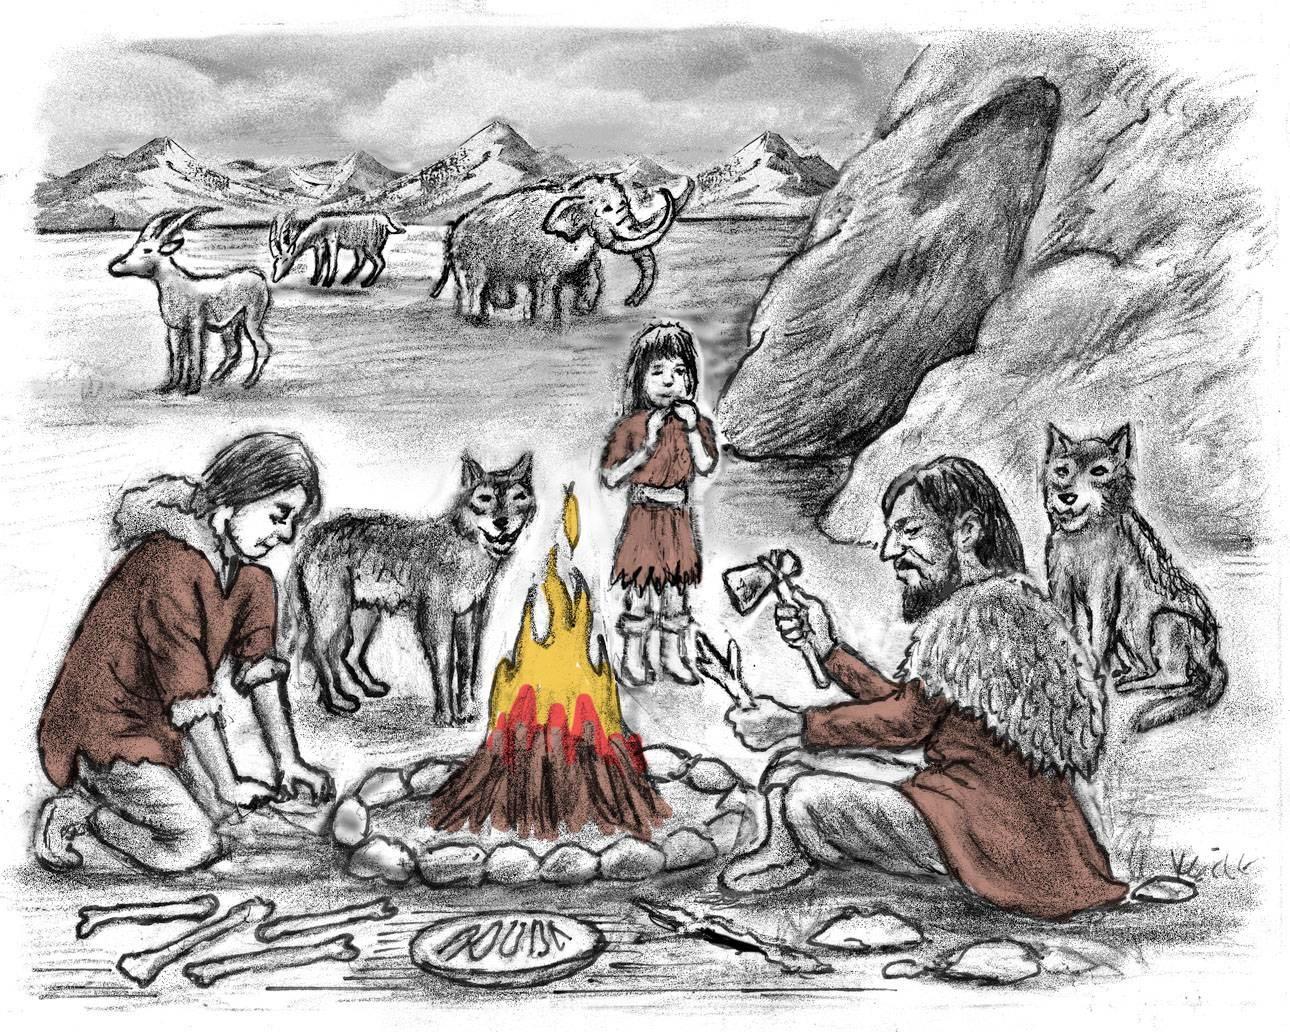 Paleolithic family, history quest audio download